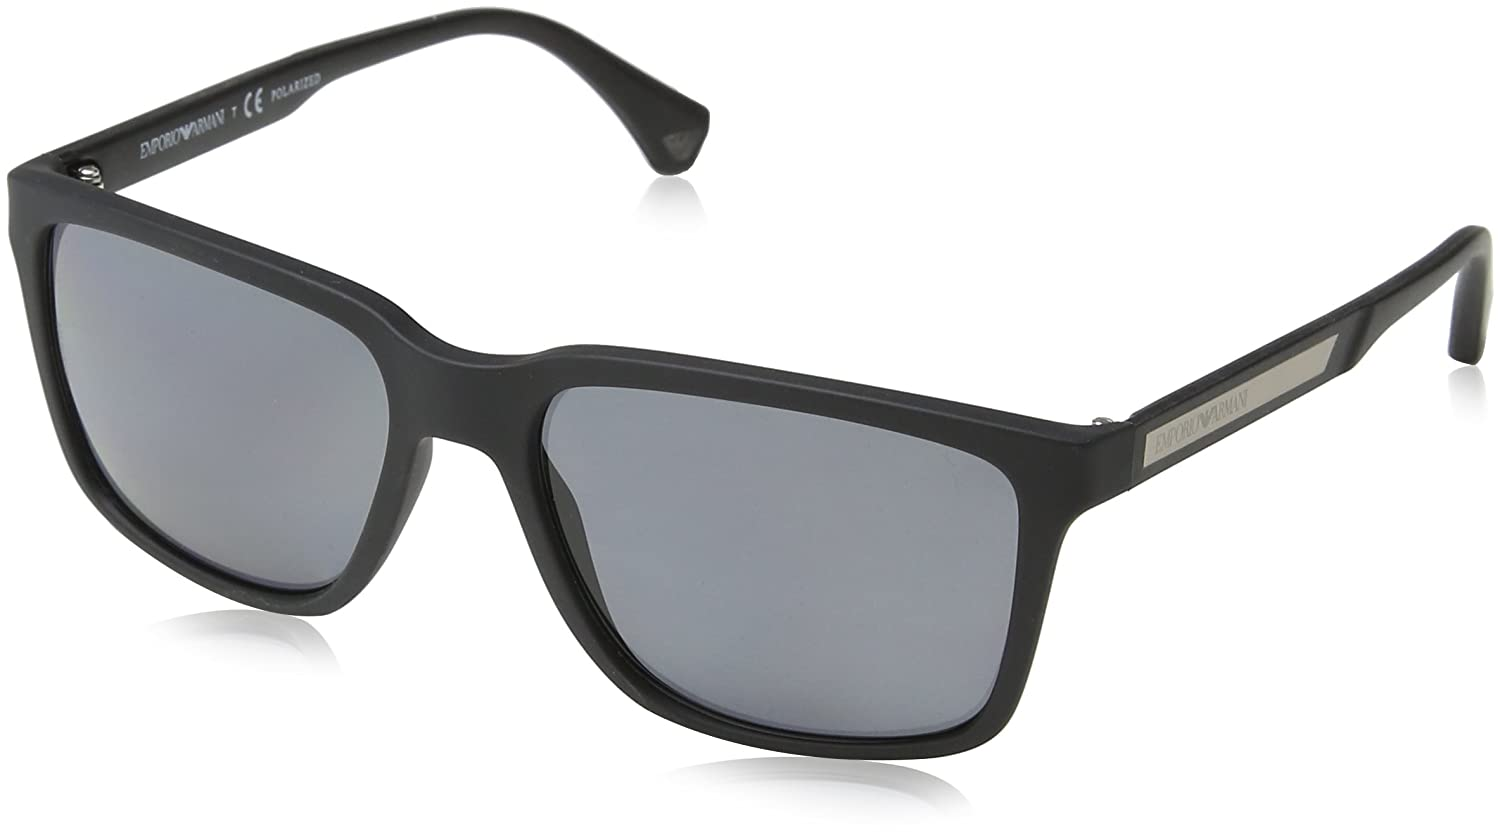 f7792b4b755 Amazon.com  Emporio Armani EA4047 506381 Black Rubber Grey Polarized  Sunglasses   Emporio Armani  Shoes